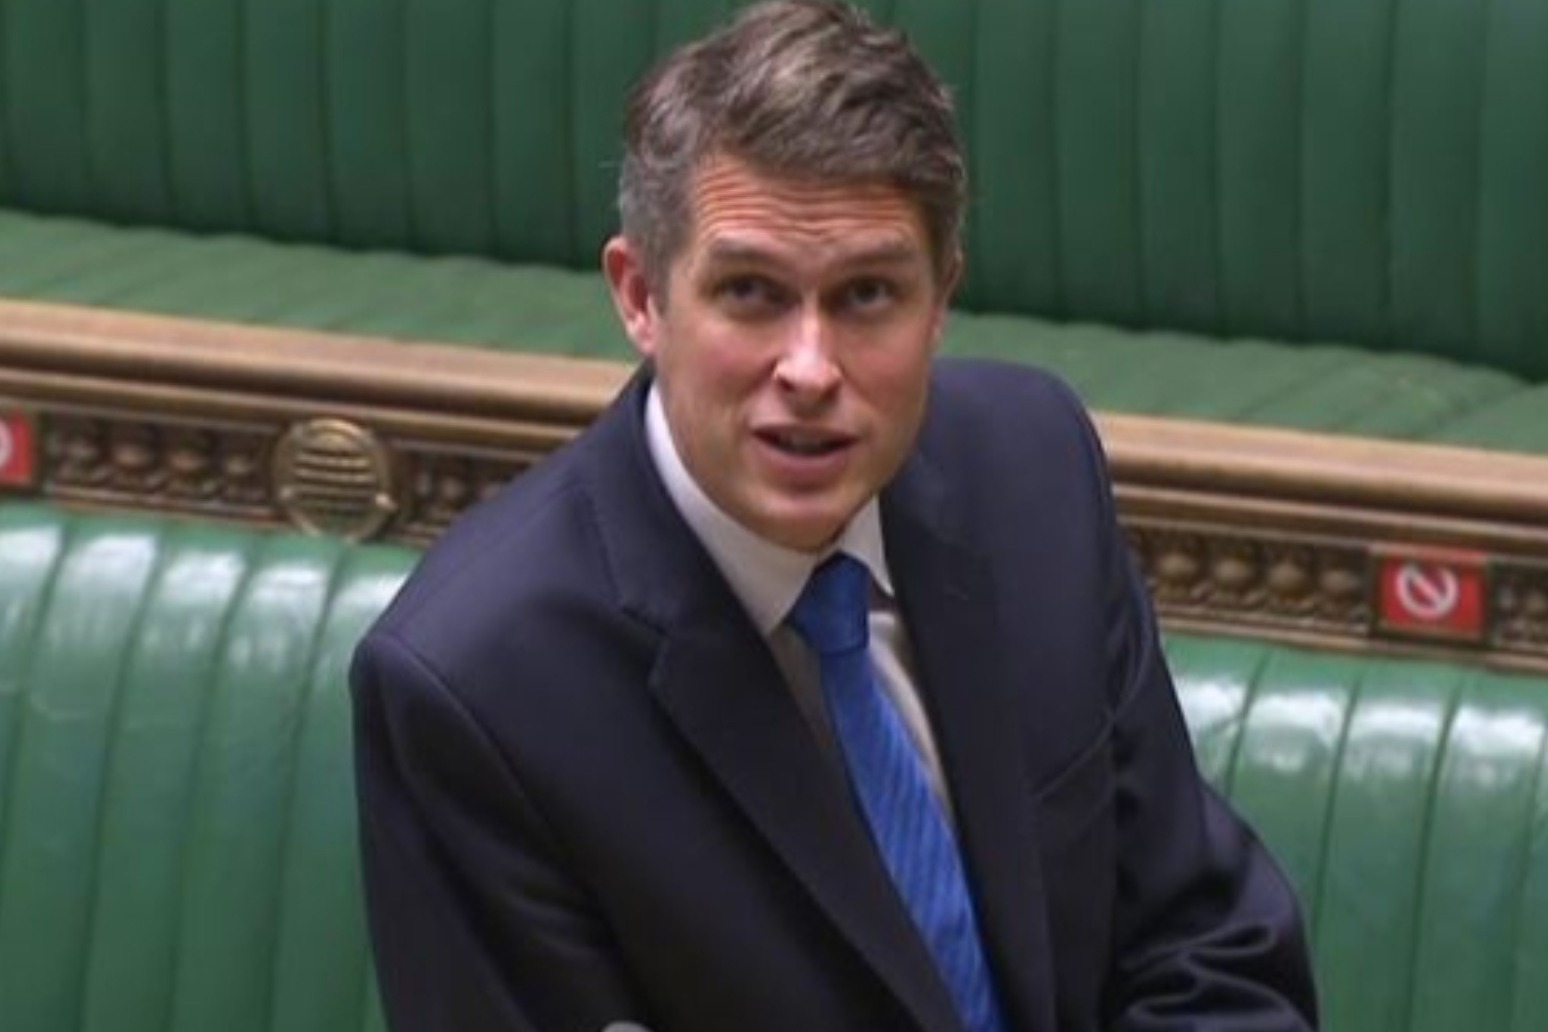 Investing in teachers 'crucial' to recovery plans - Williamson